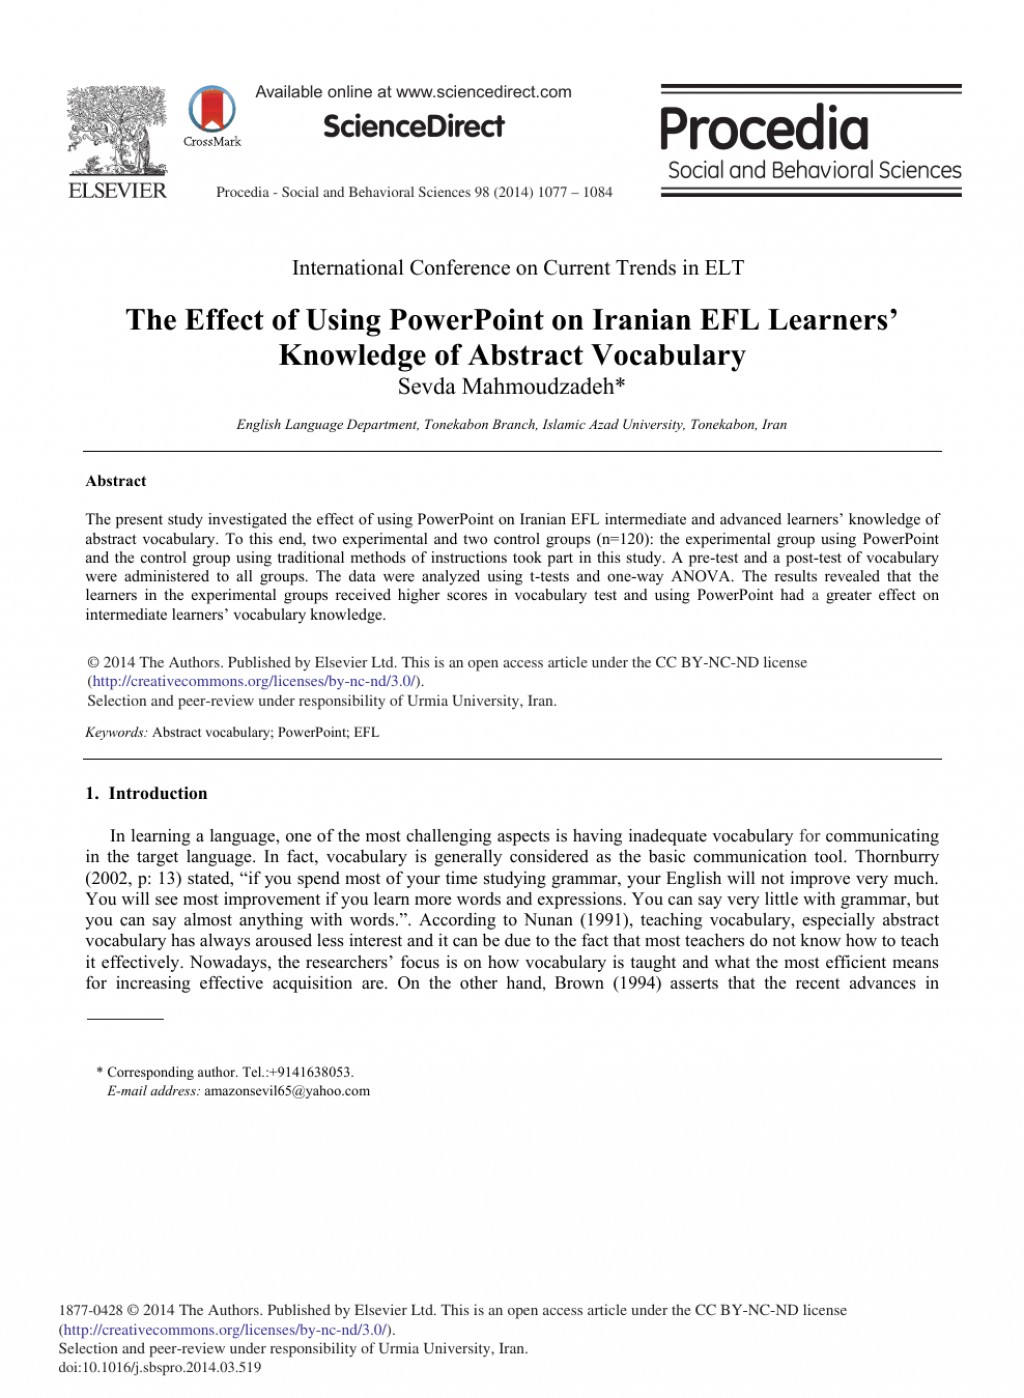 004 Research Paper How To Read Papers Fascinating Ppt Large